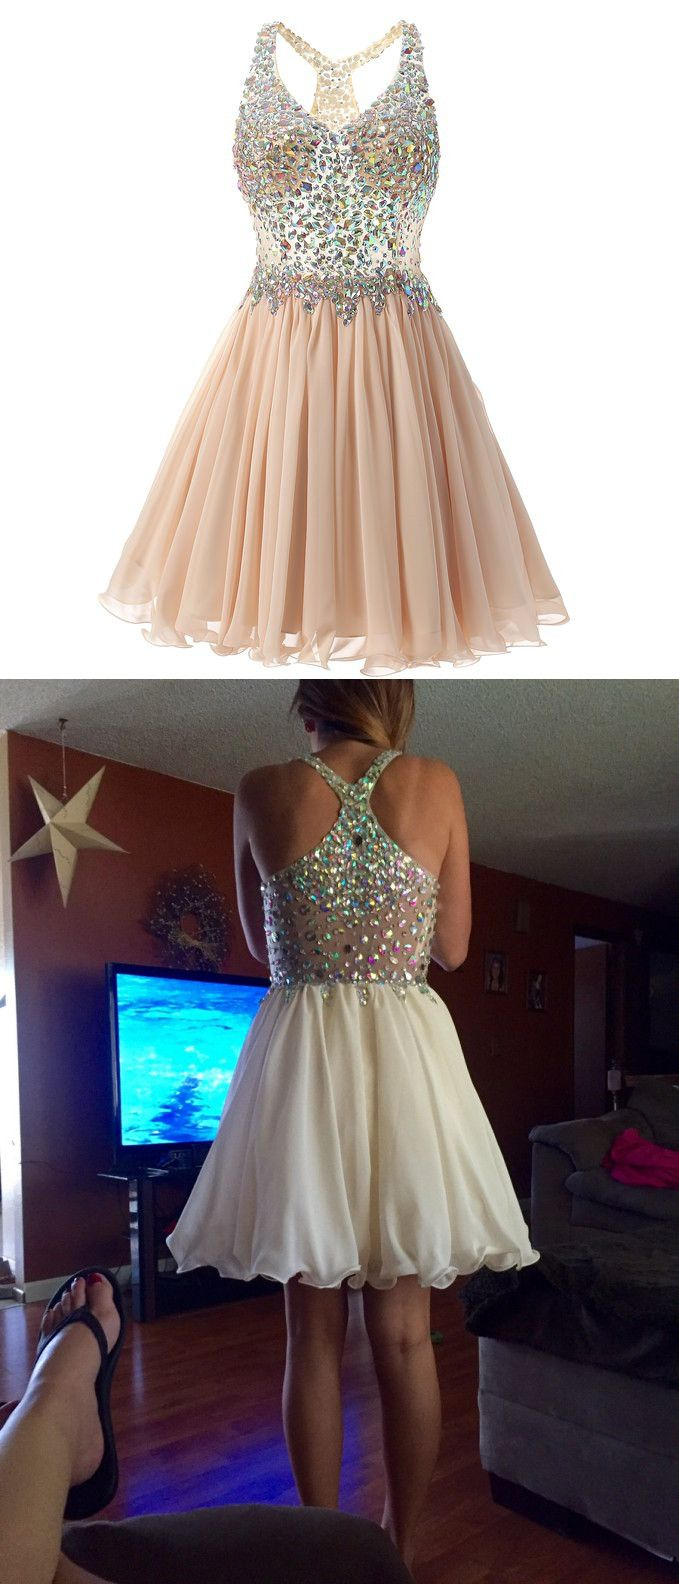 2016 homecoming dresses, short homecoming dresses, peach homecoming dresses, champagne homecoming dresses, cheap homecoming dress under 100